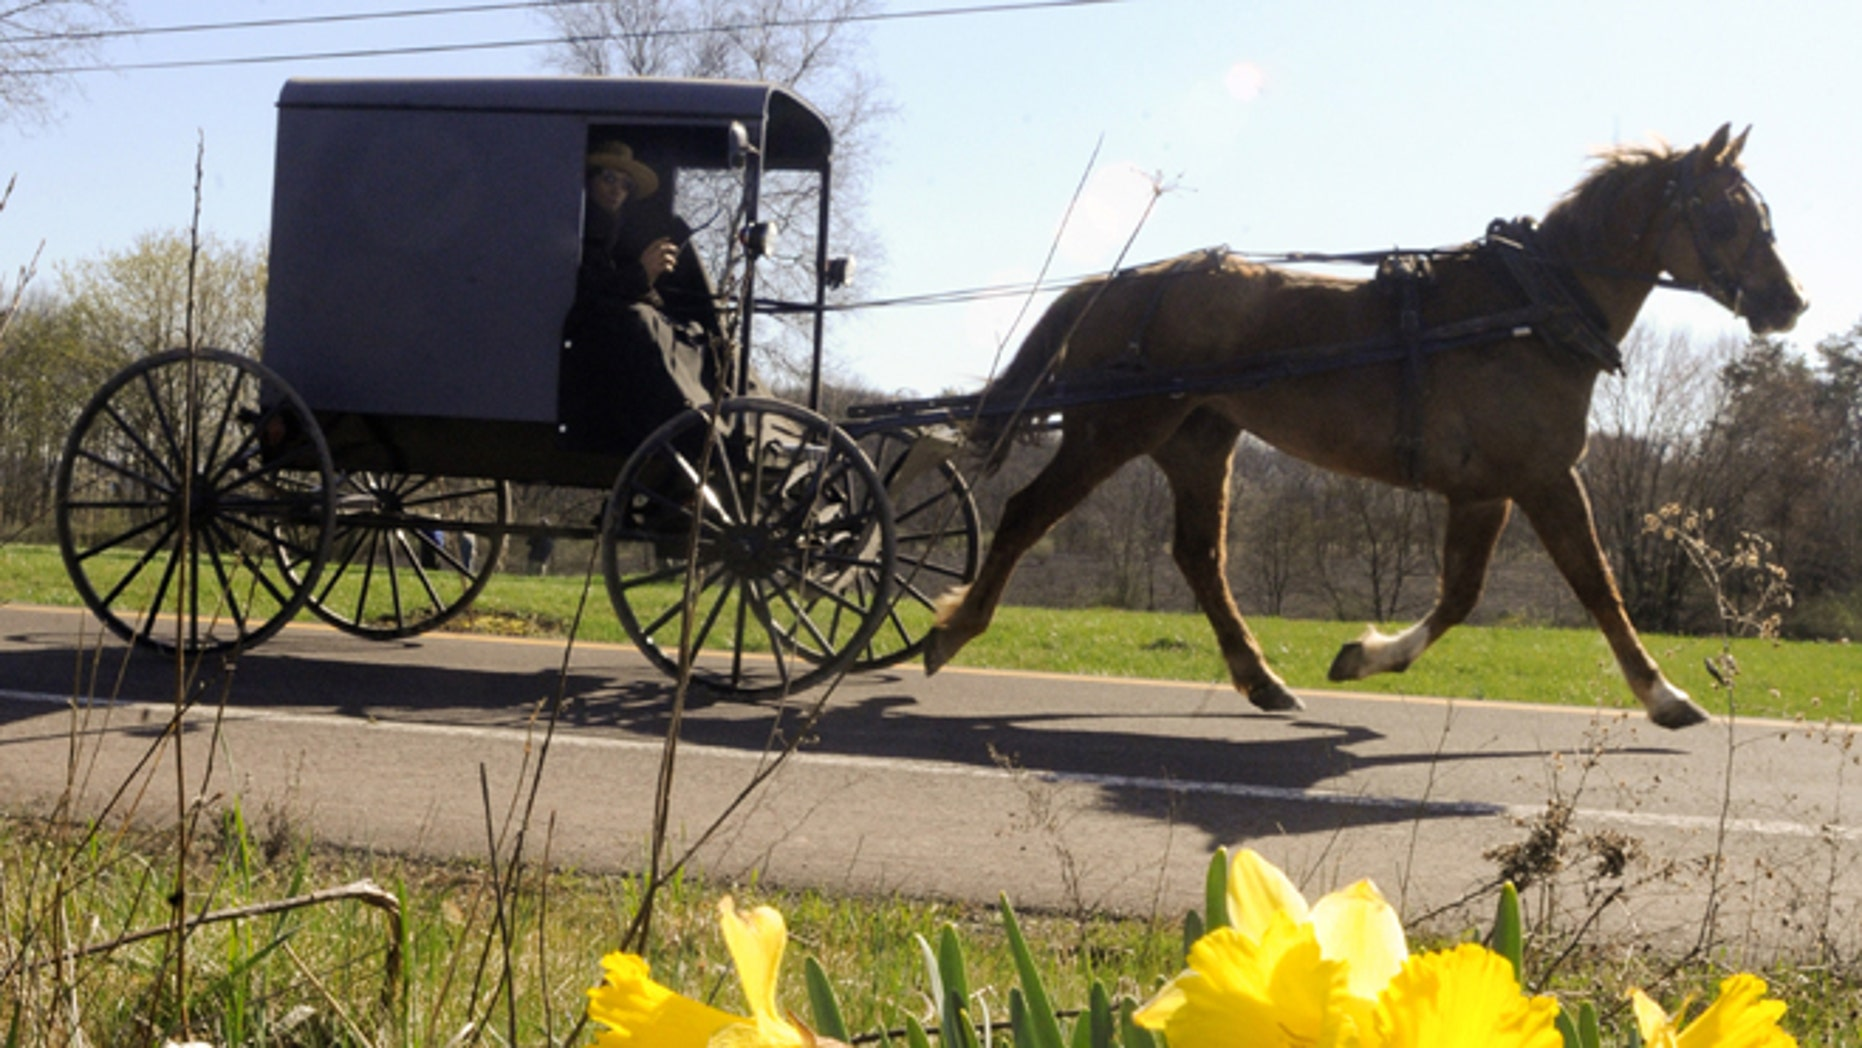 March 27, 2012: An Amish buggy along Route 44 in Madison Township near White Hall, Pa.